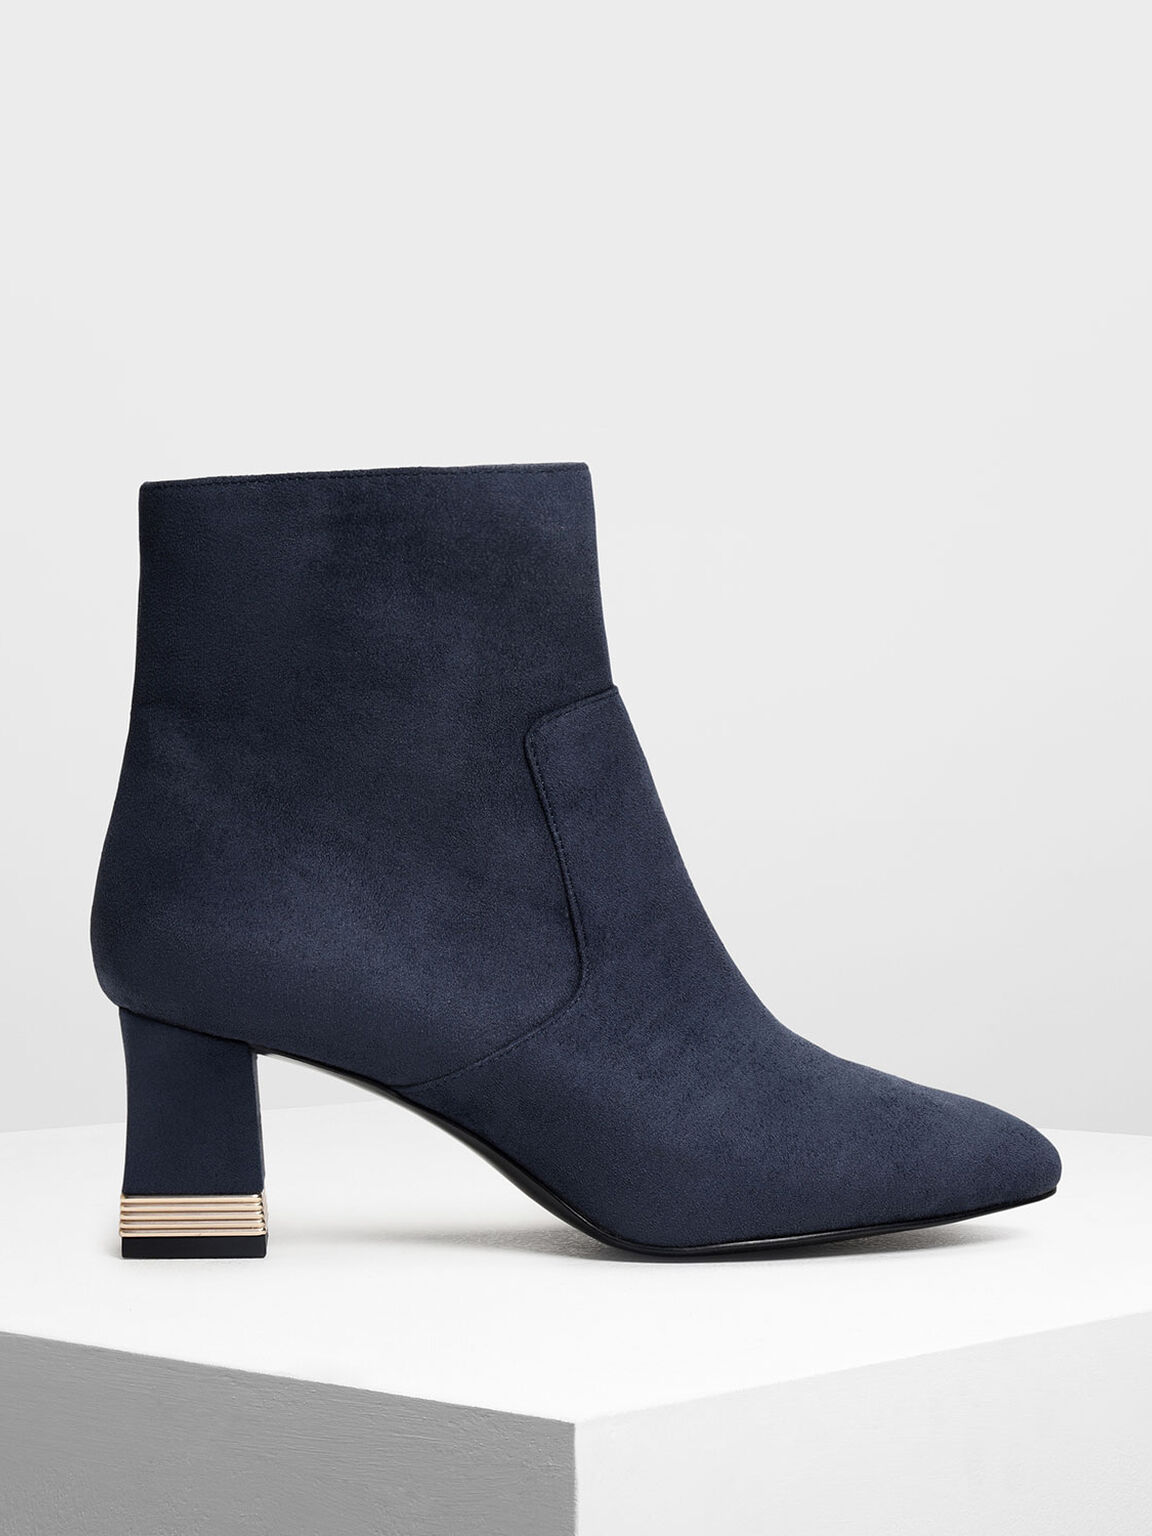 Metallic Accent Heel Boots, Dark Blue, hi-res